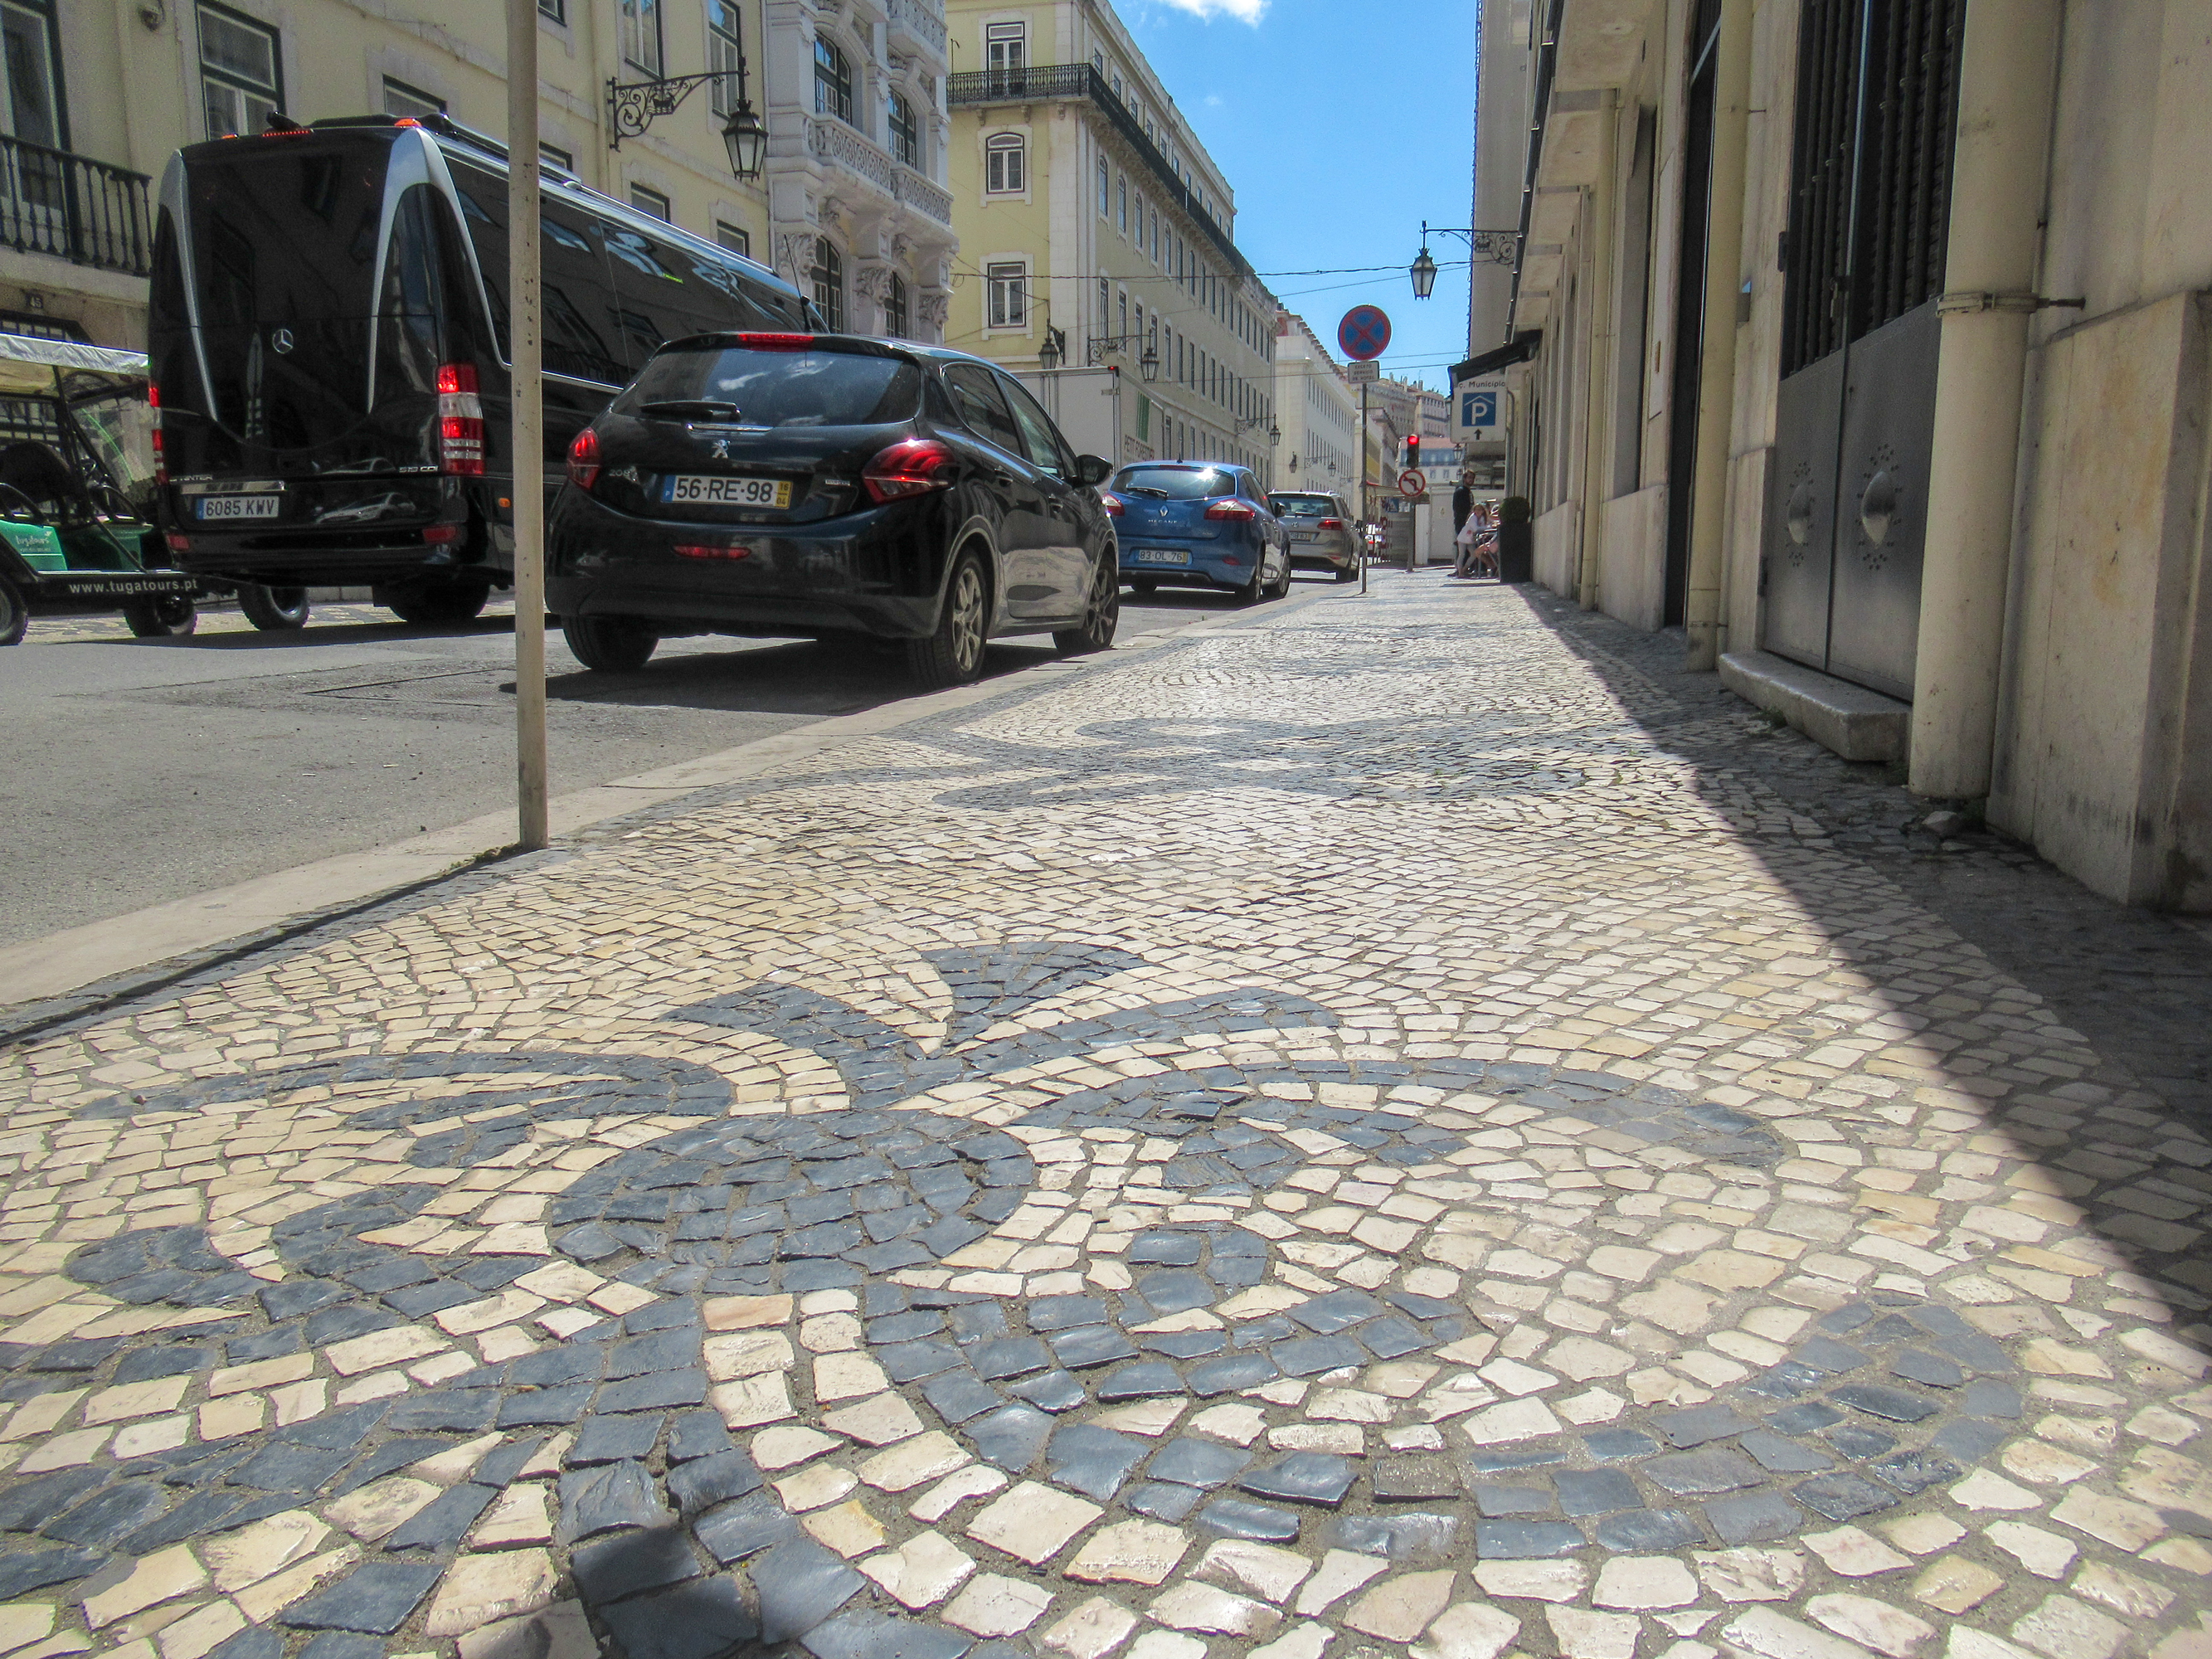 Tile Mosaic designs on the sidewalk in Lisbon, Portugal.